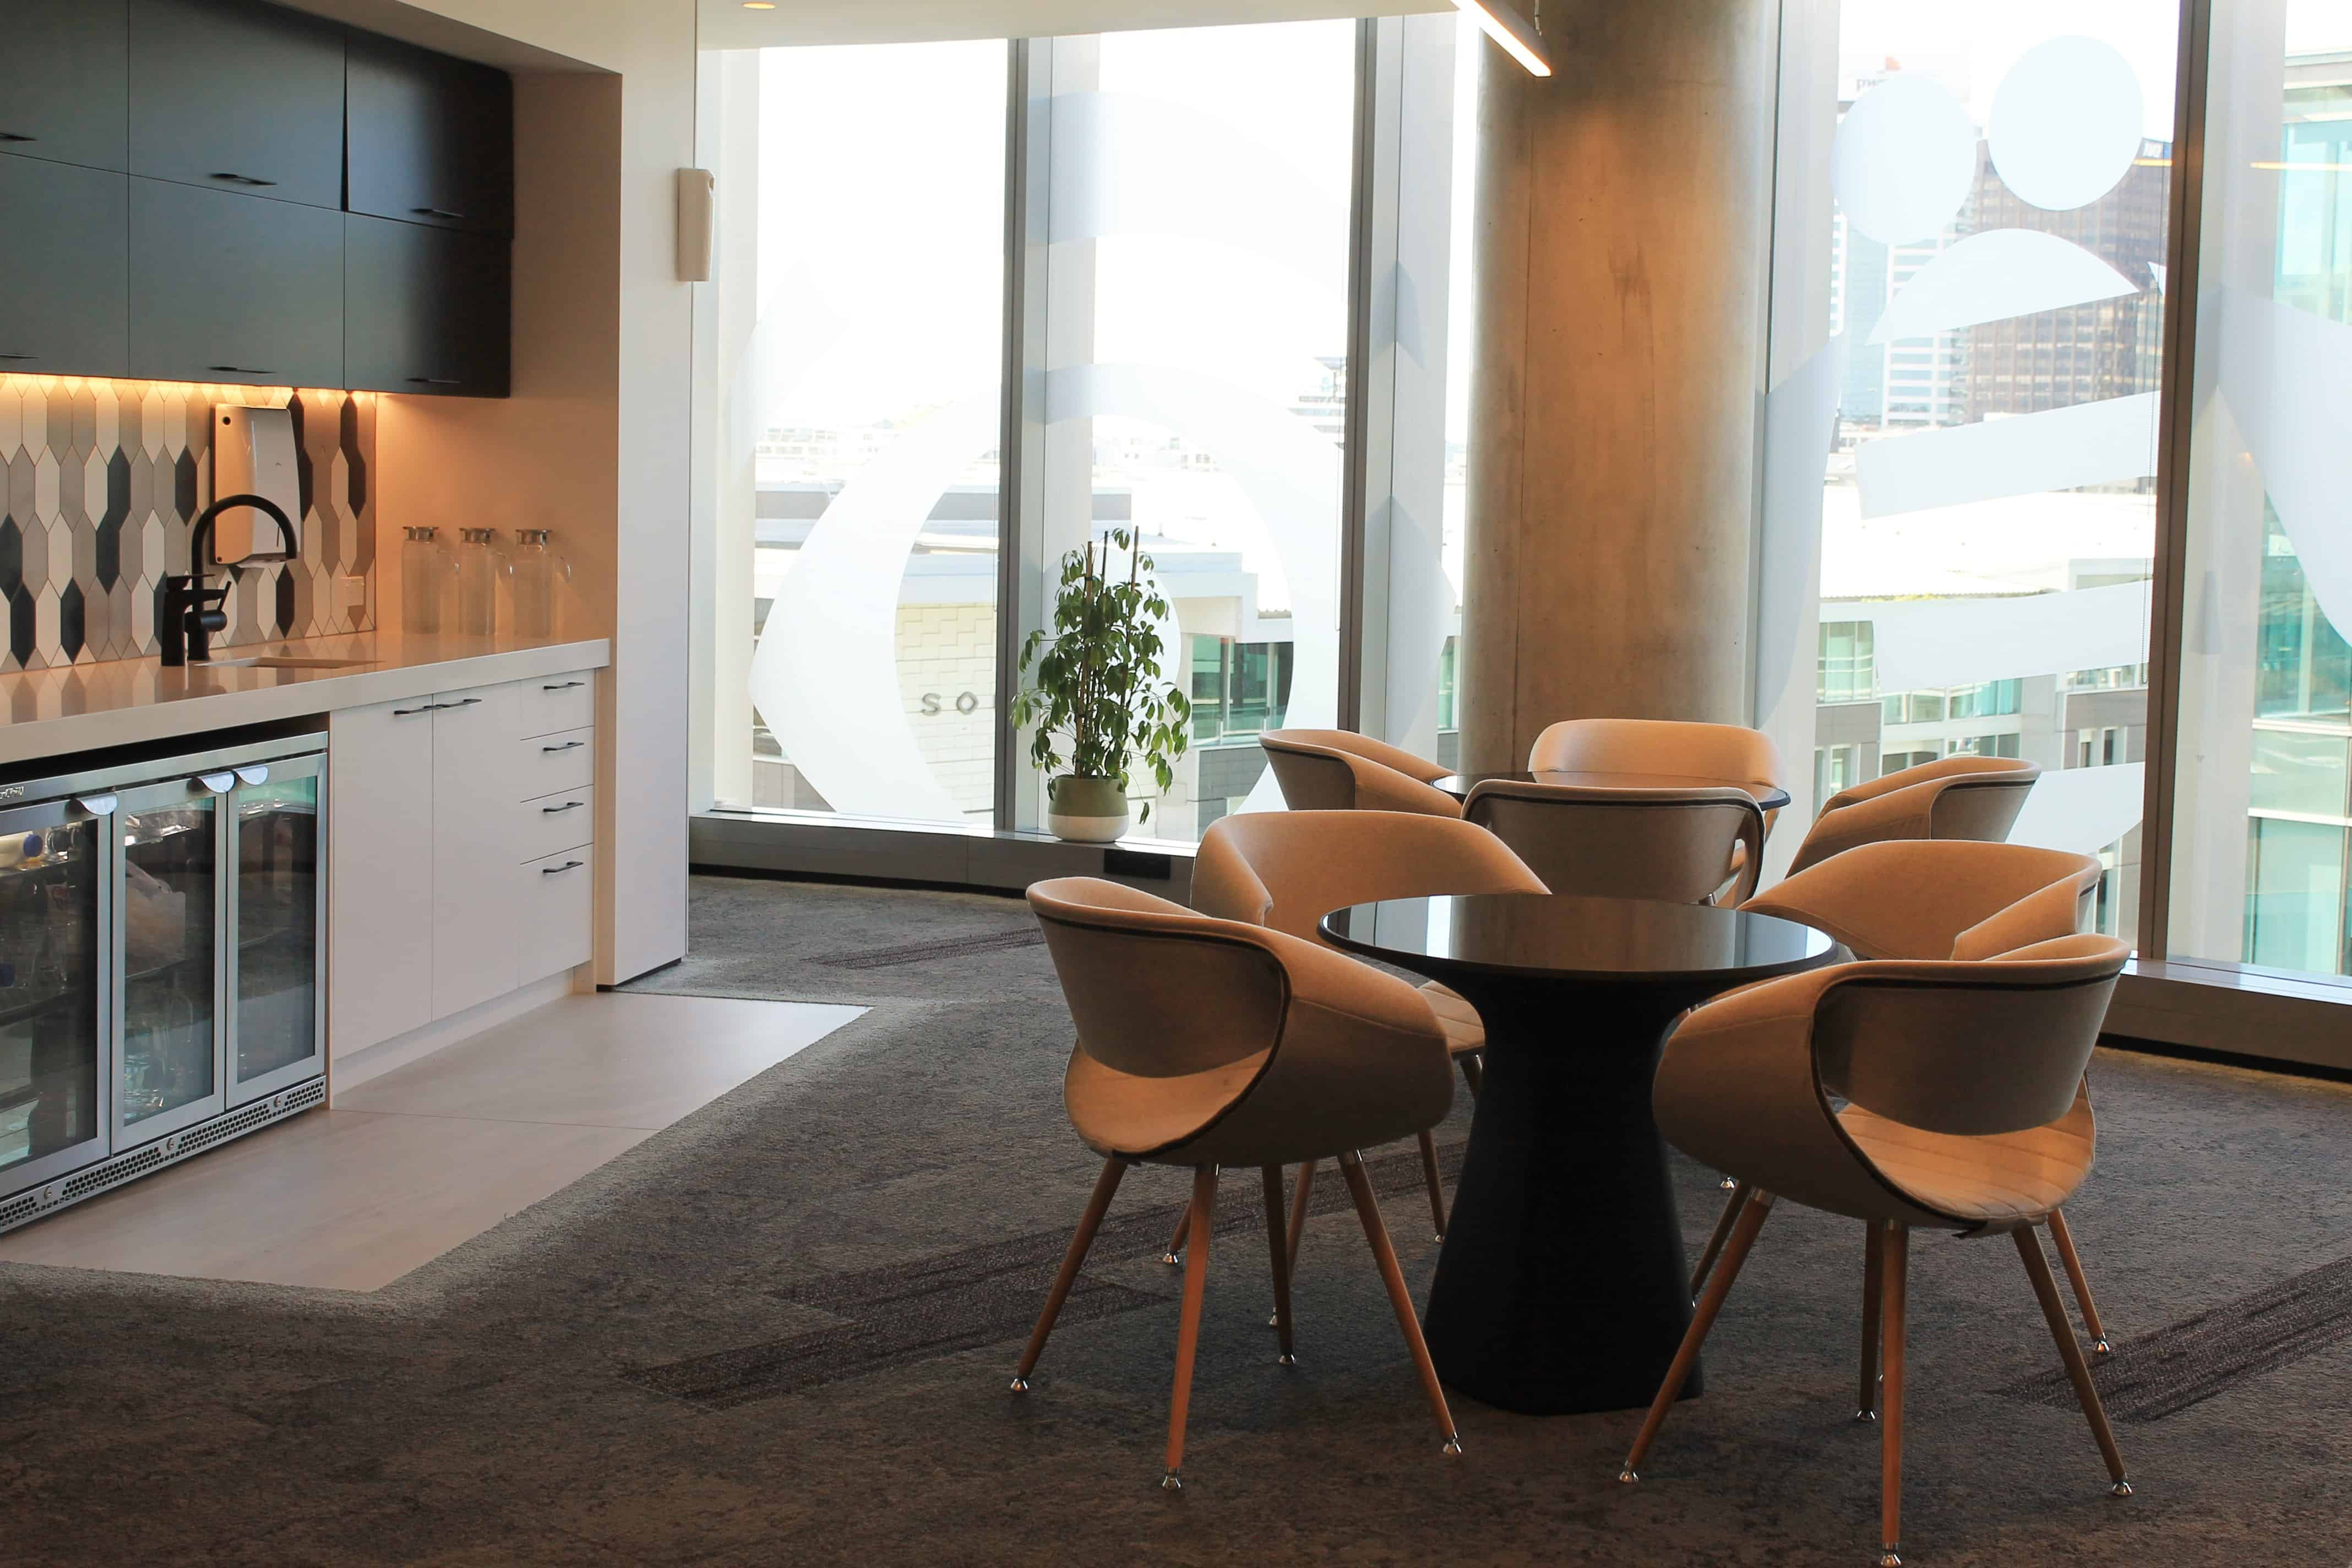 IBM office in Auckland workplace kitchen design with sink, fridges, tables and chairs